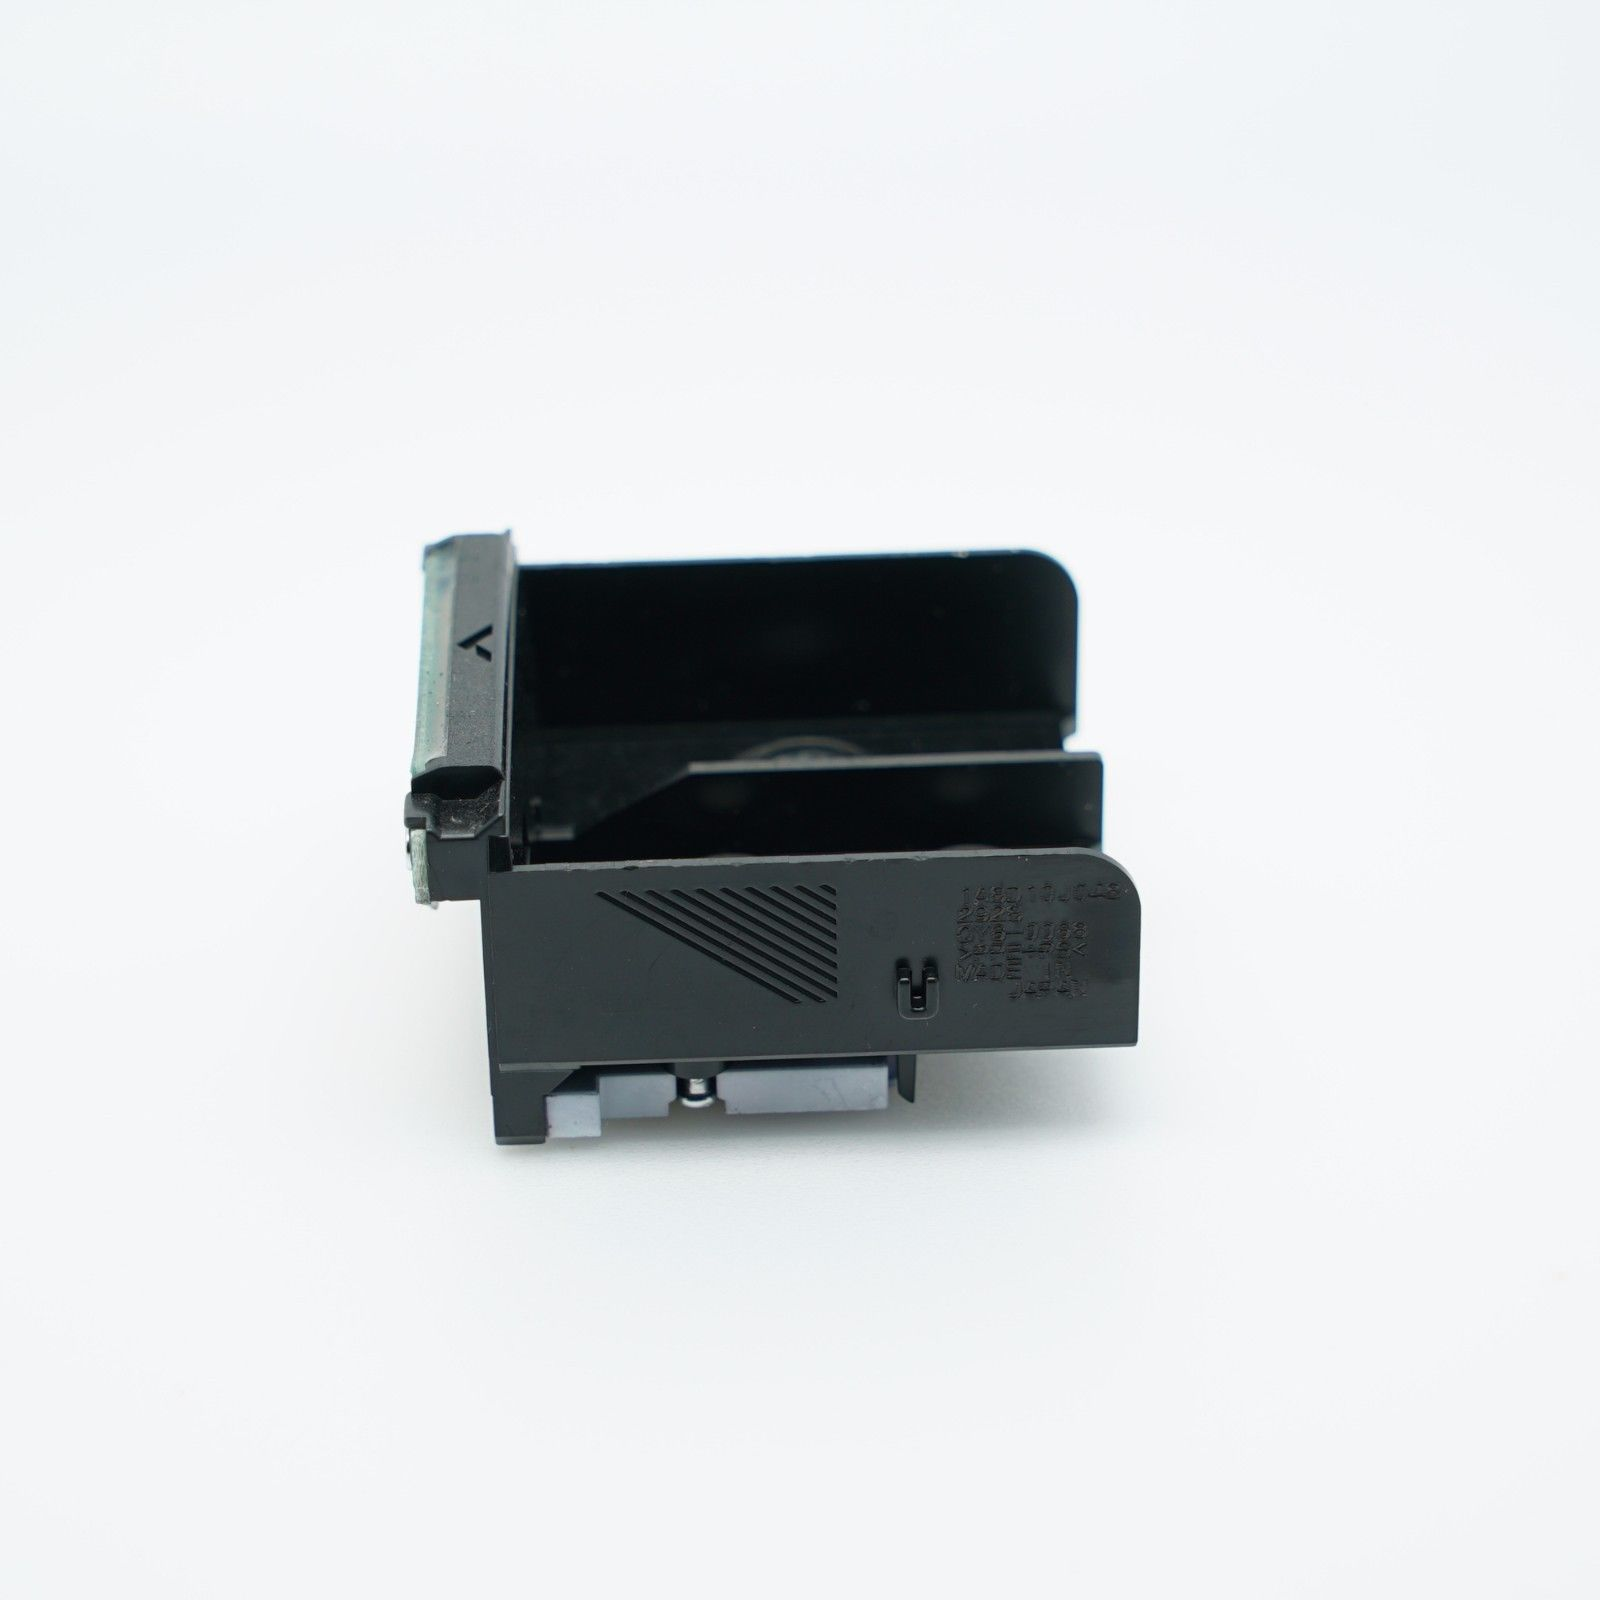 QY6-0068 QY6-0068-000 Printhead Print Head FOR CANON PIXMA iP100 iP110 original new qy6 0089 print head for canon pixma ts5050 ts5051 ts5053 ts5055 ts5070 ts5080 ts6050 ts6051 ts6052 ts6080 printhead